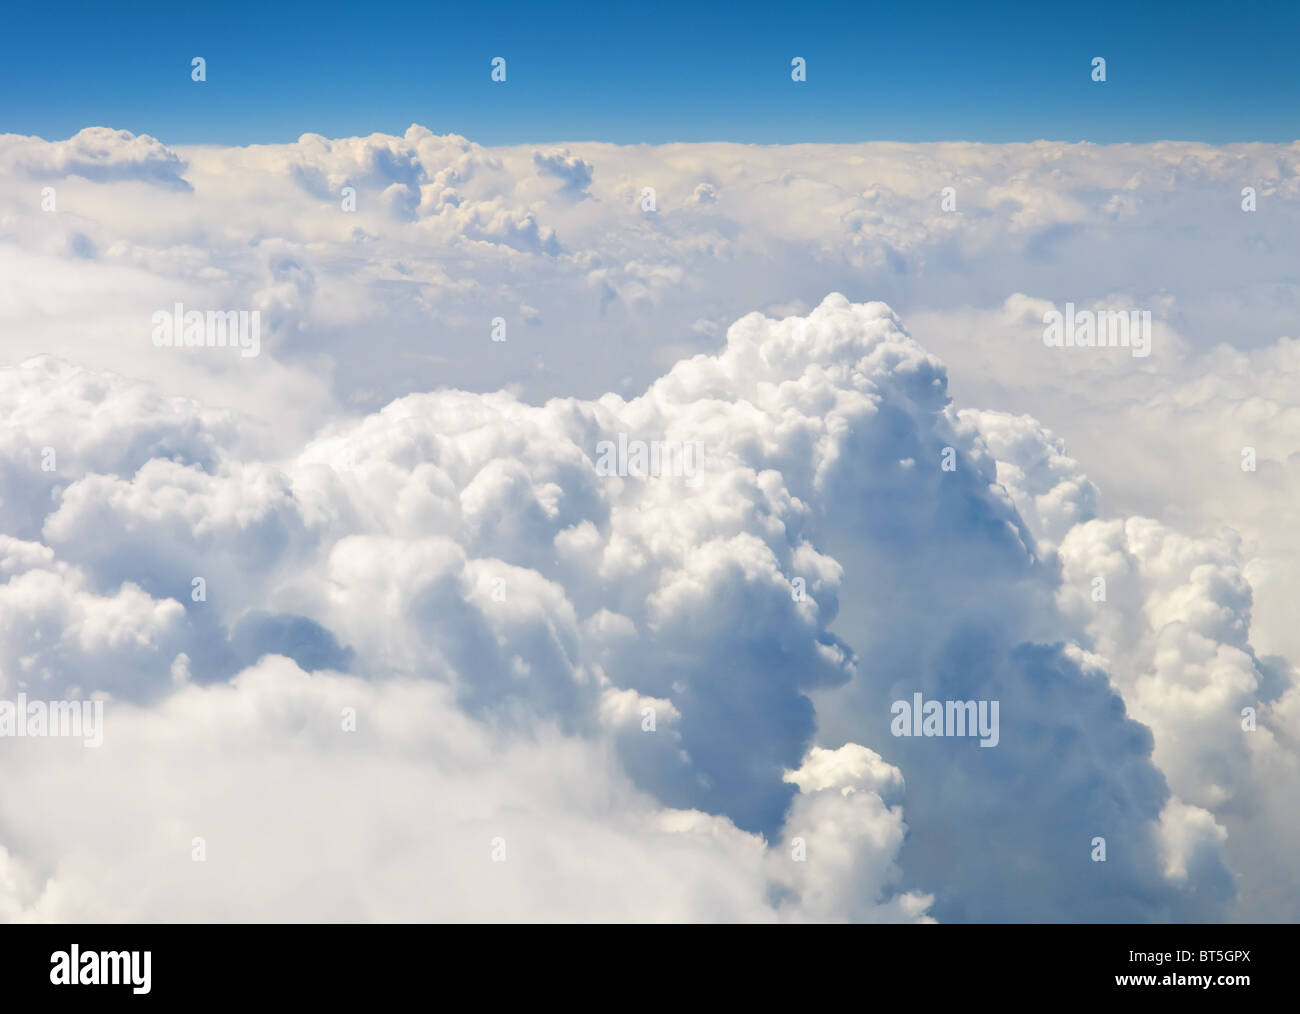 atmosphere - sky and clouds background - Stock Image